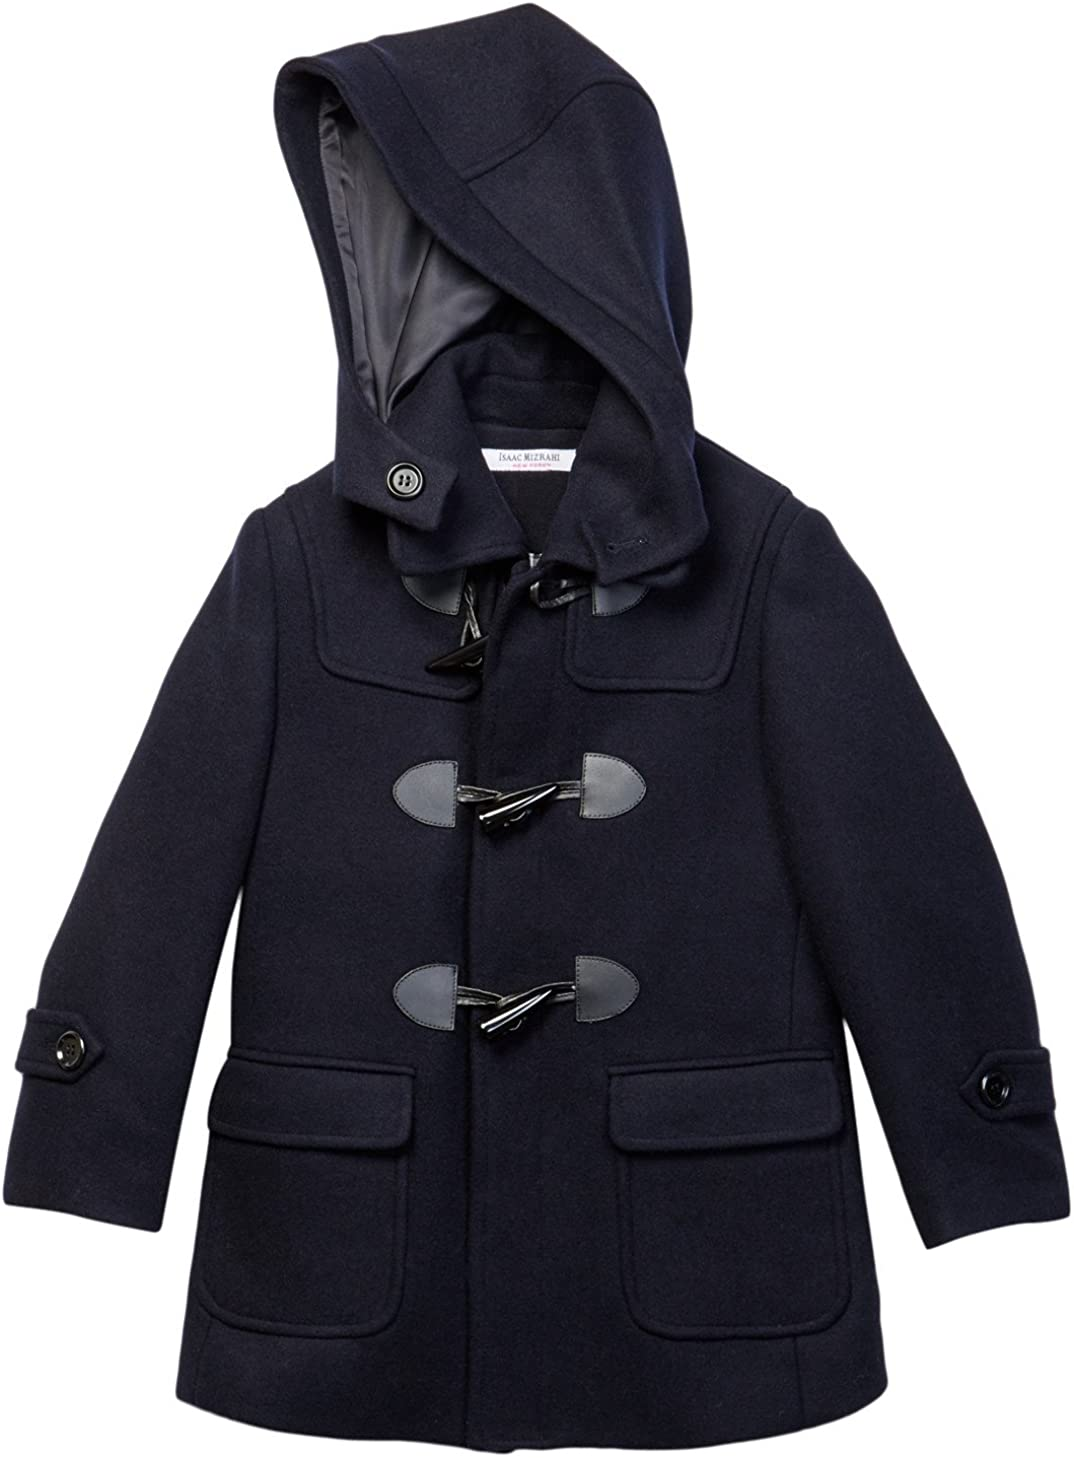 Isaac Mizrahi Boys 2-20 Solid Wool Toggle Coat with Removble Hood Colors